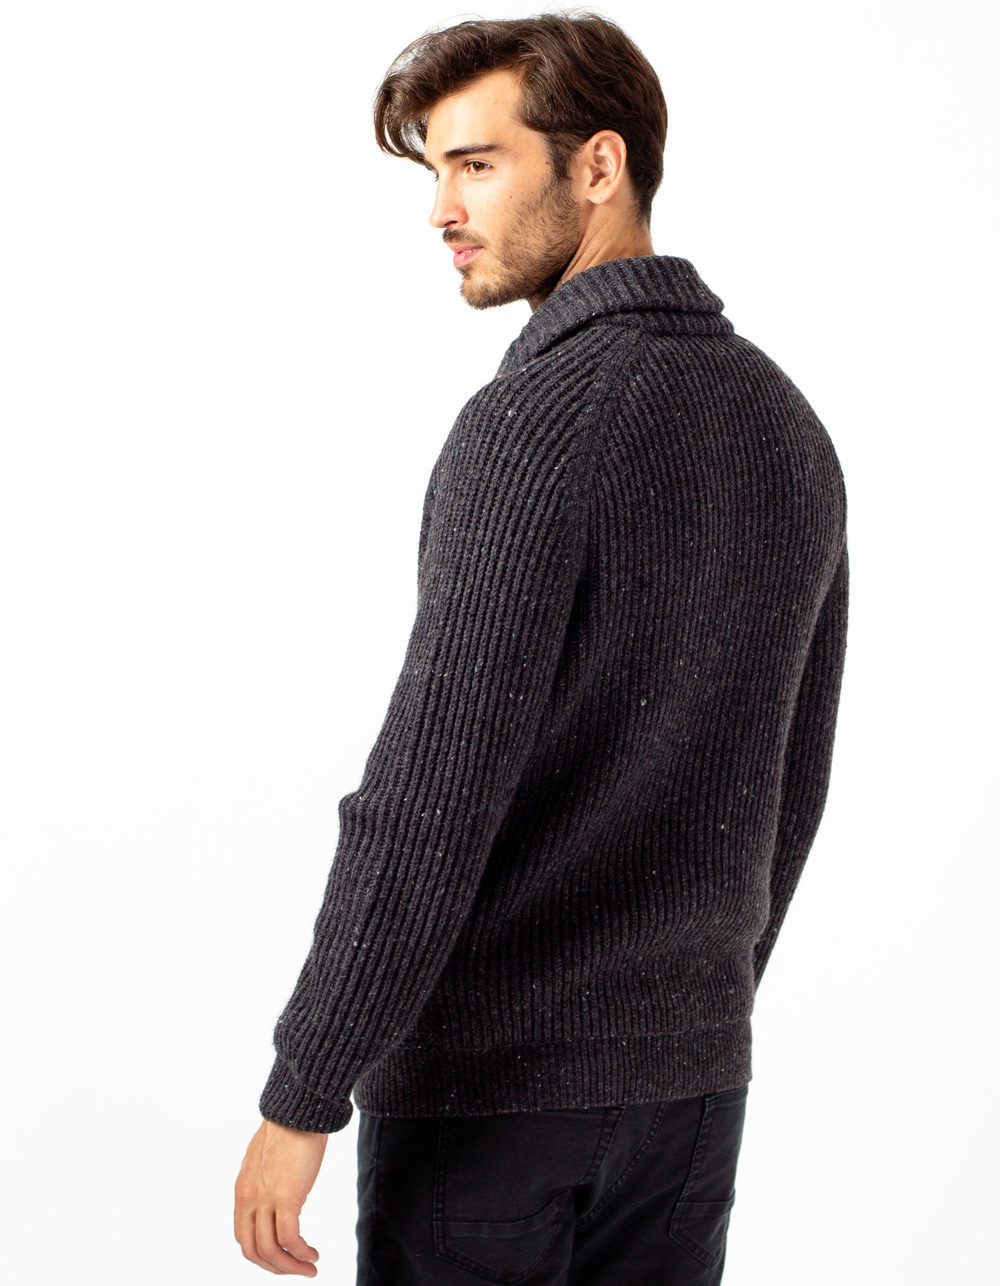 Grey shawl neck cardigan - Backside